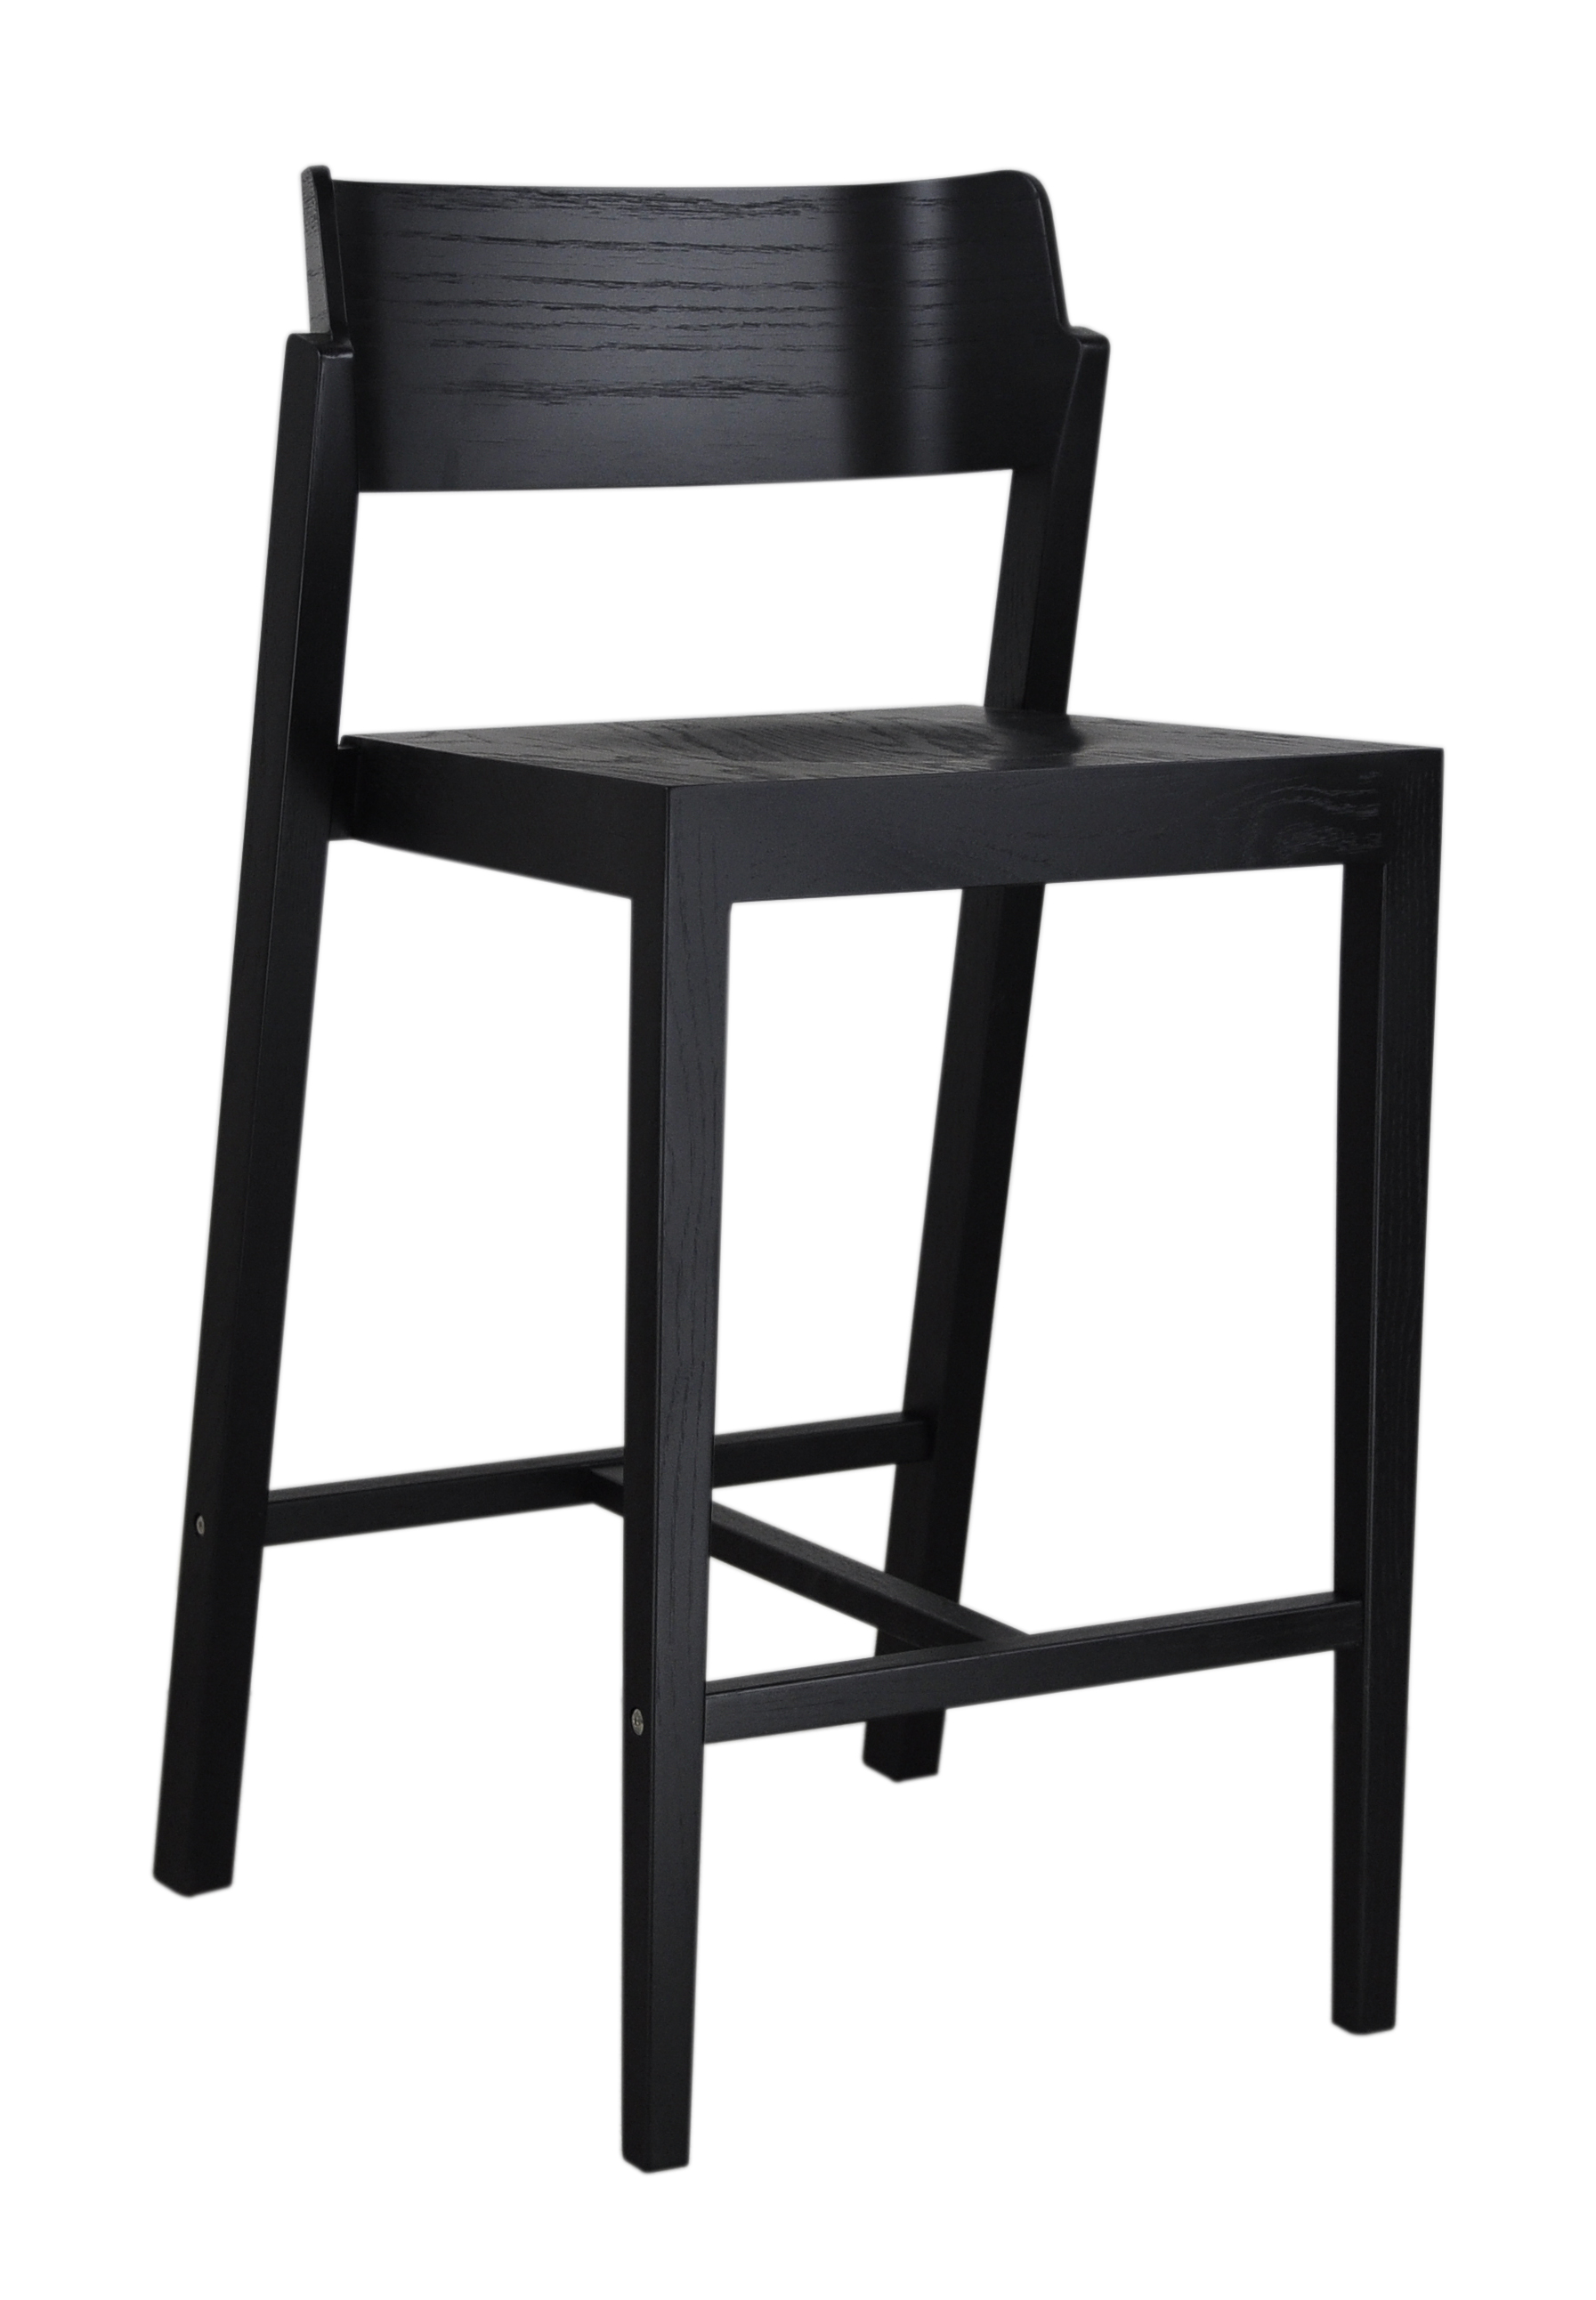 The 100 Counter Stool in black